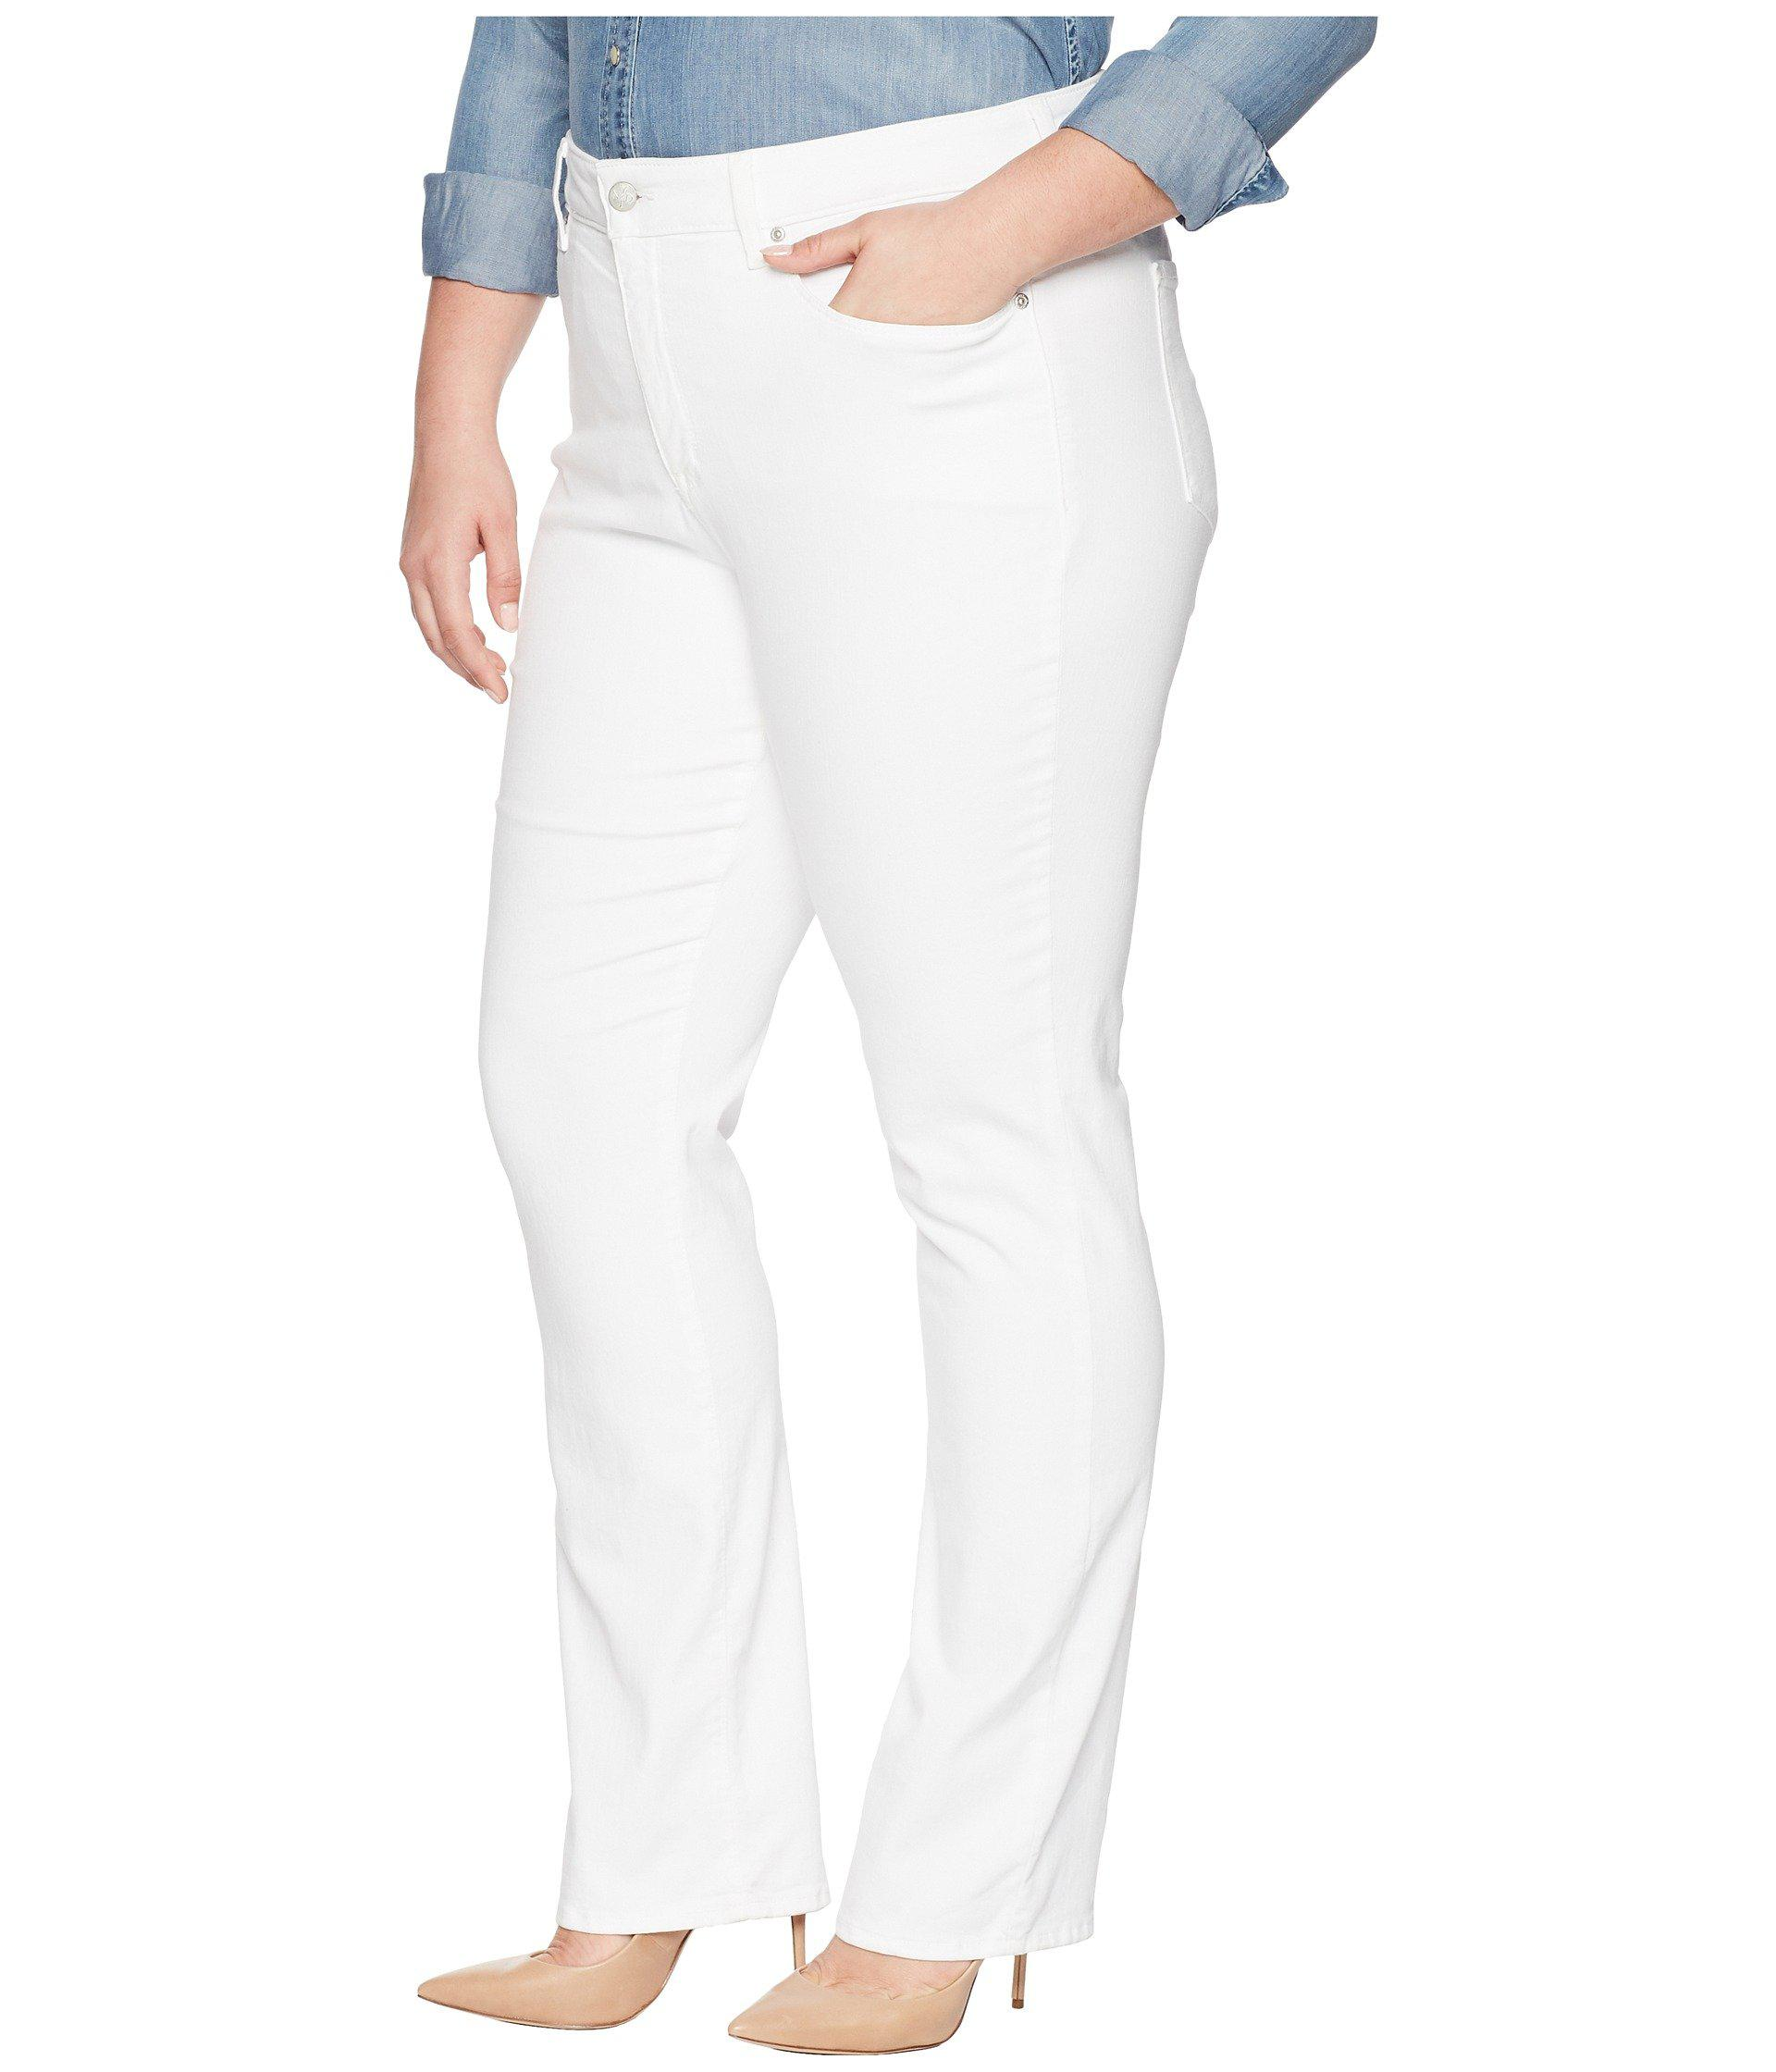 b0394549778 Lyst - Nydj Plus Size Marilyn Straight In Optic White (optic White) Women s  Jeans in White